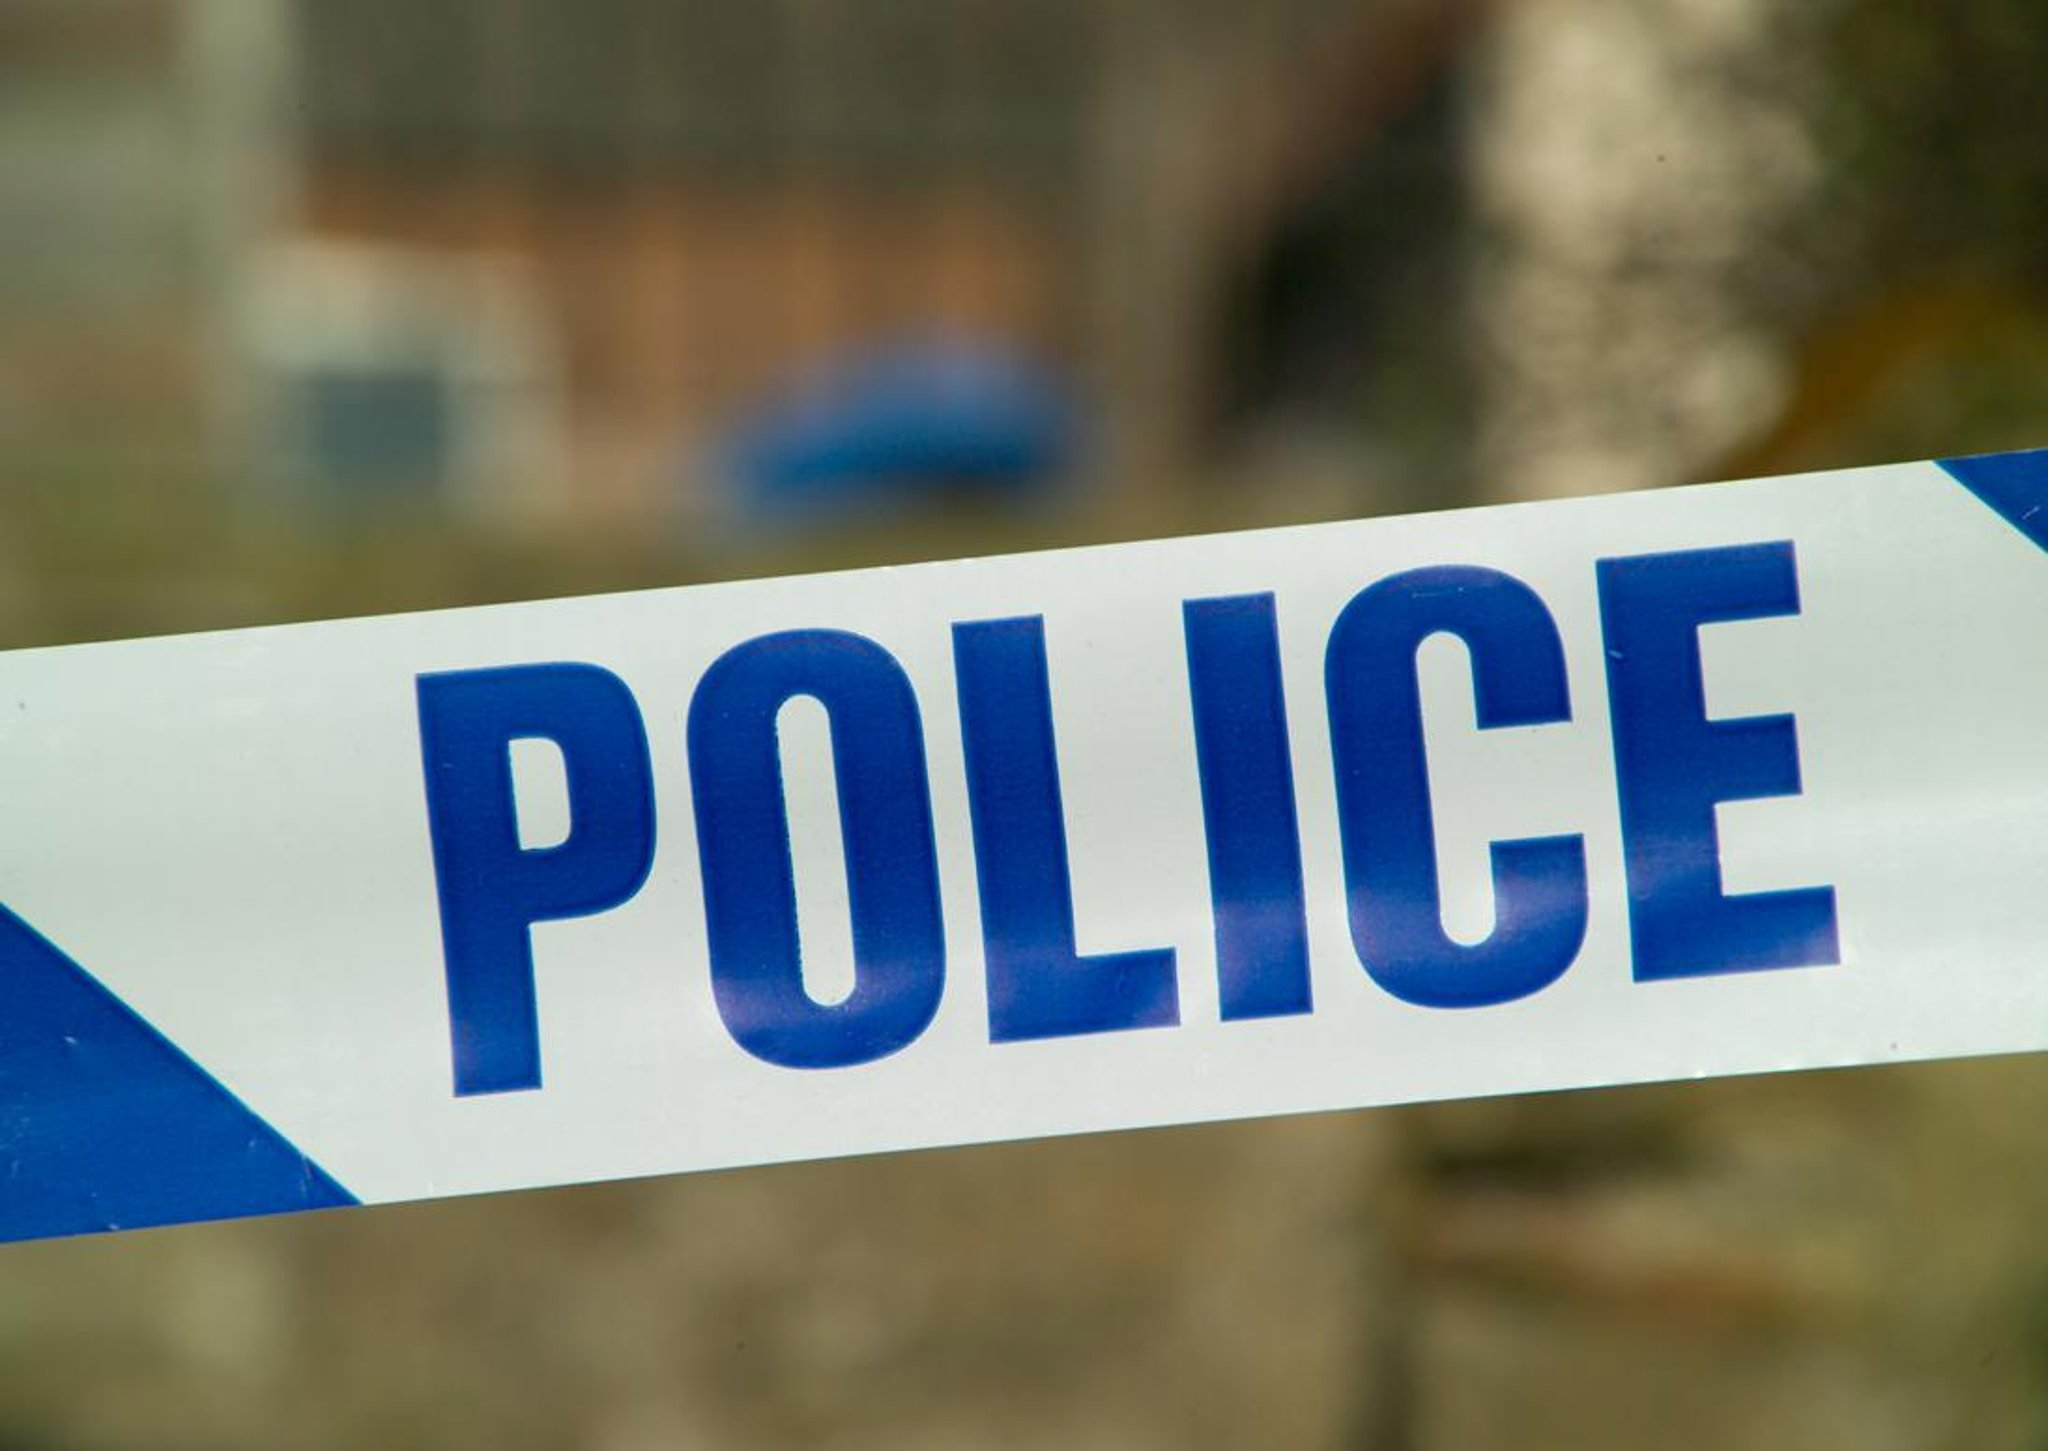 Man charged with petrol bomb offence